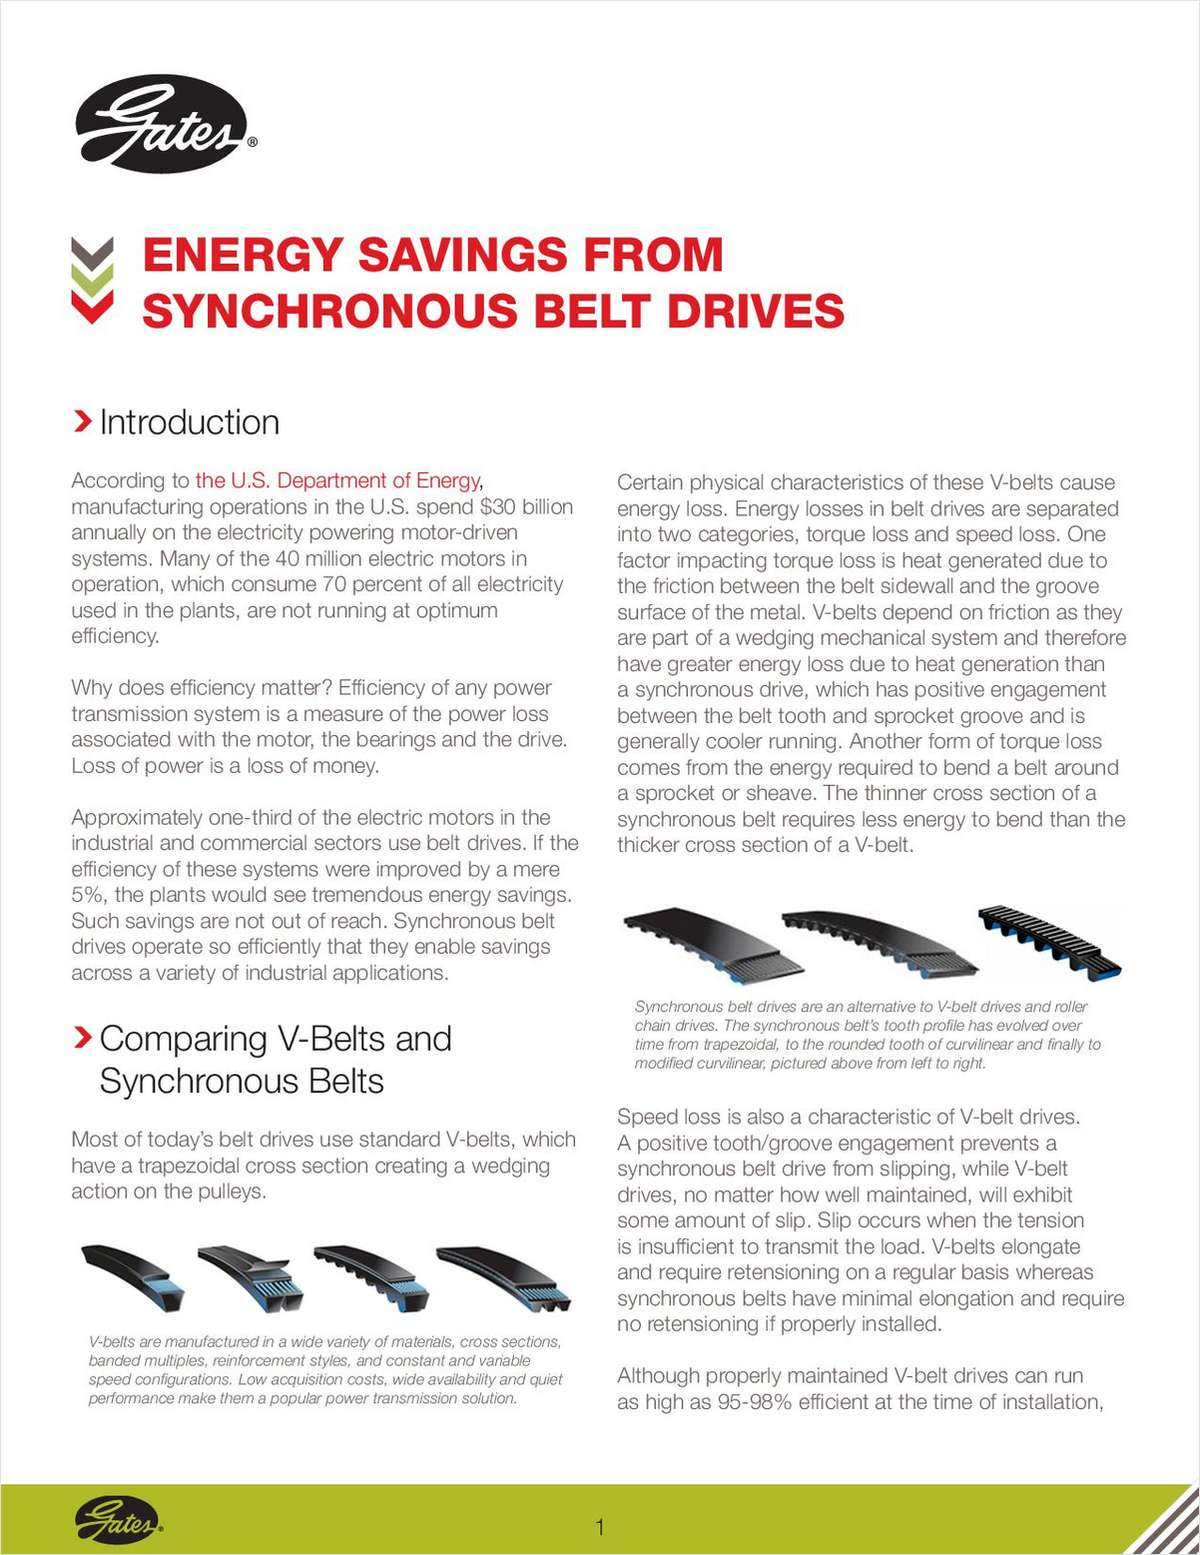 Energy Savings from Synchronous Belt Drives